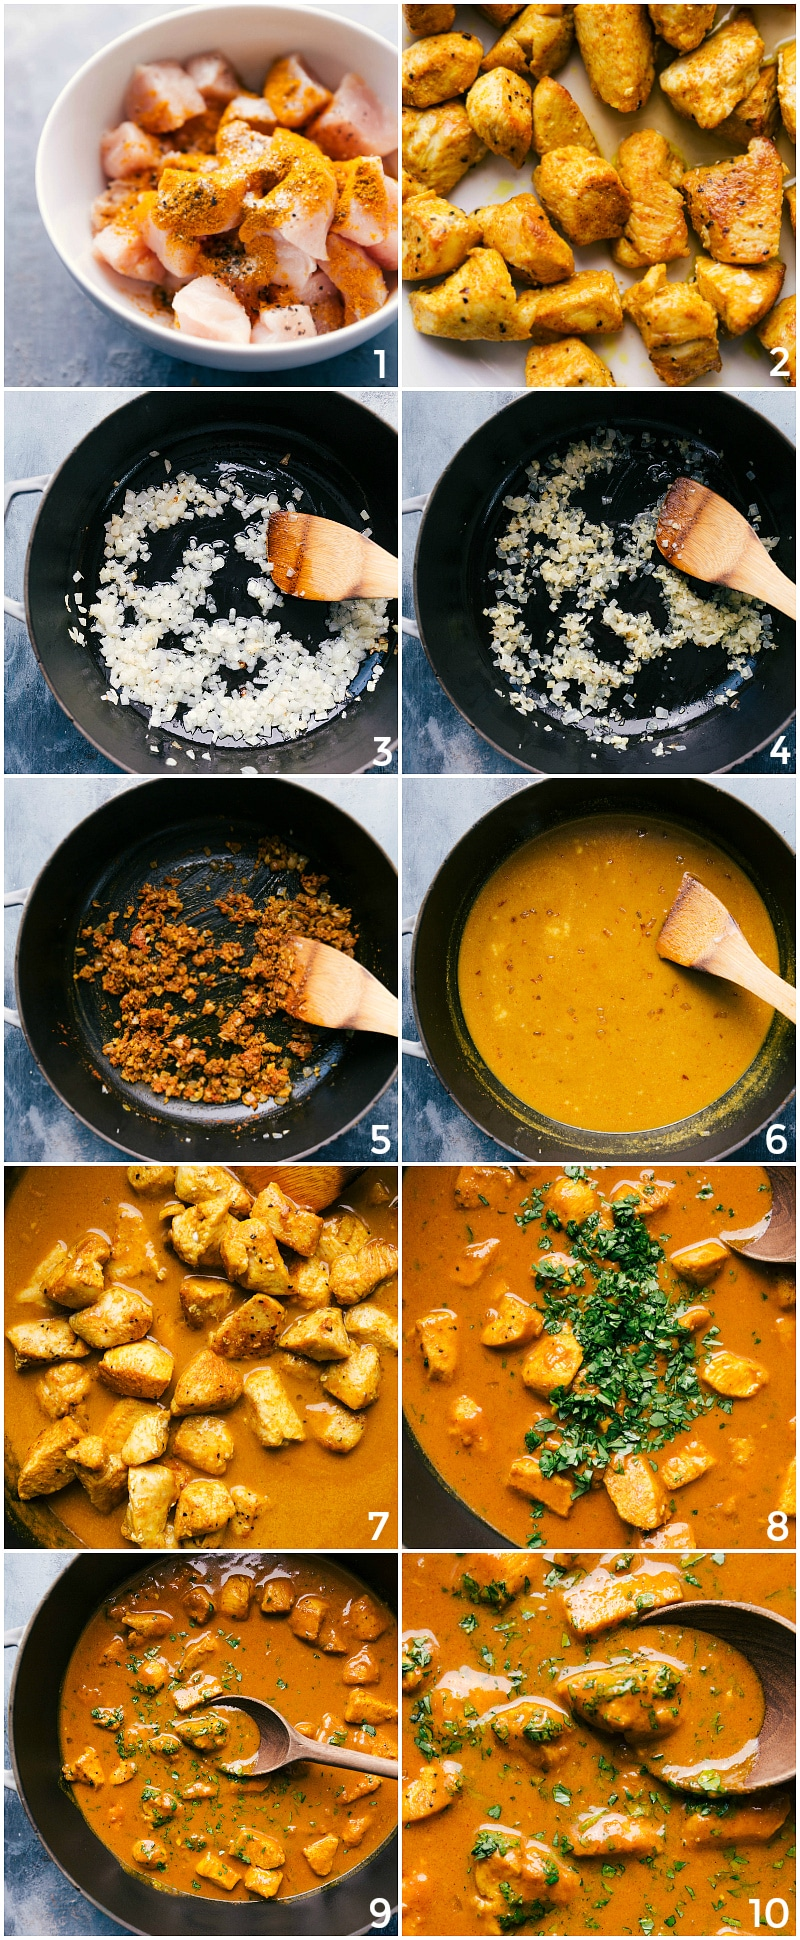 Process shots-- images of the chicken curry being made from start to finish.